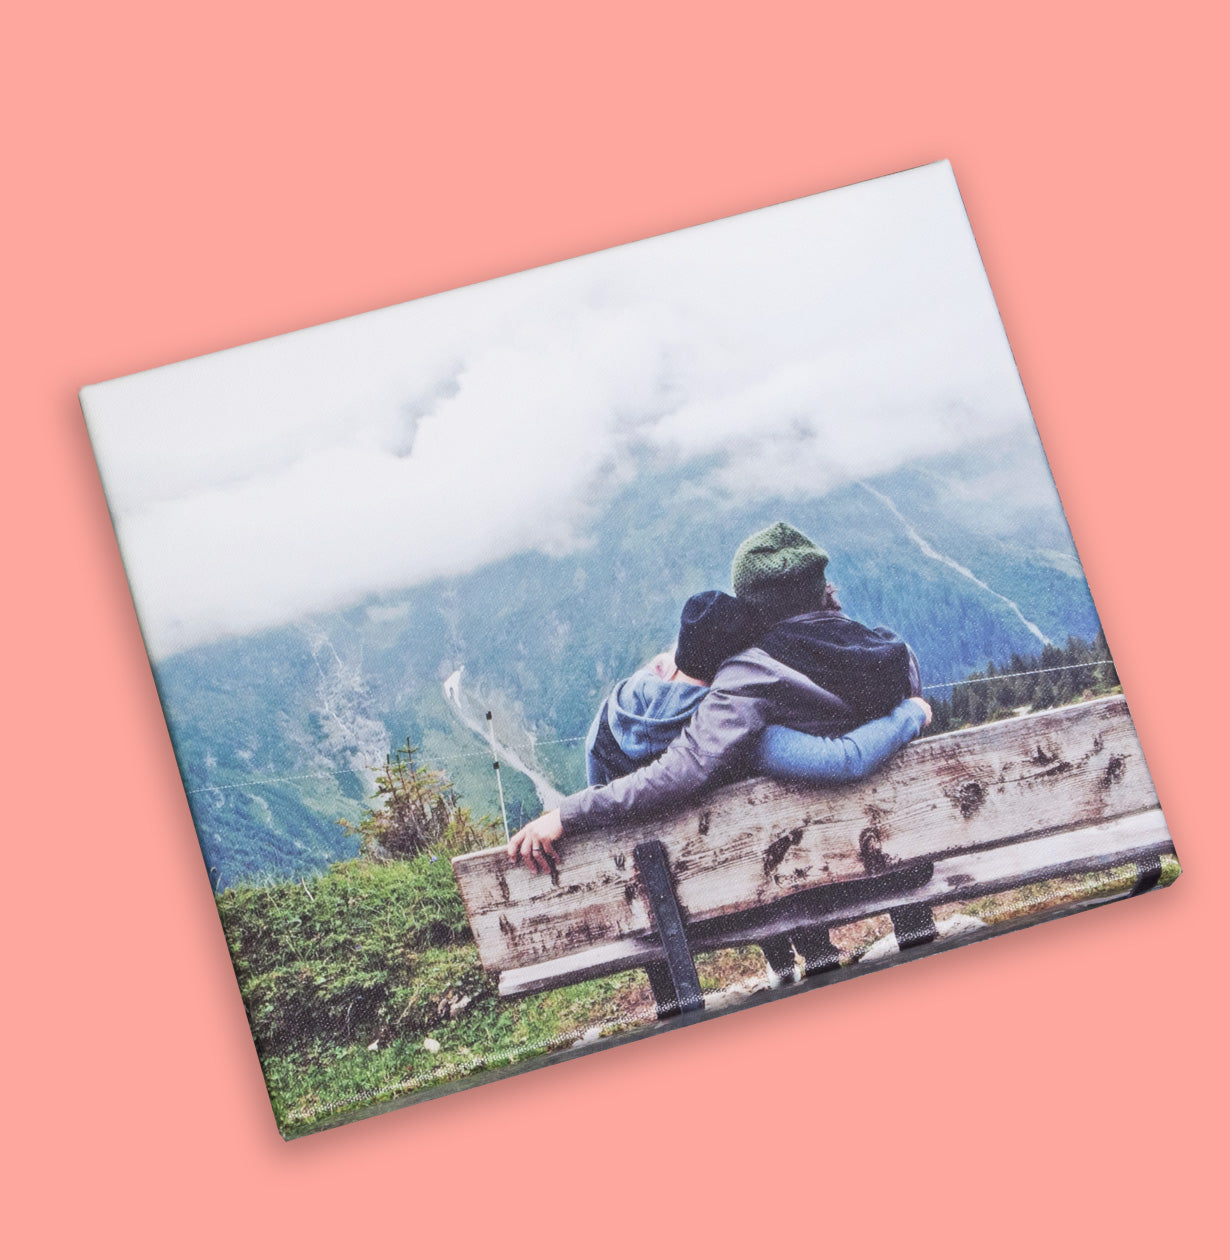 Photo of a couple sitting on a bench printed on canvas by Posterjack